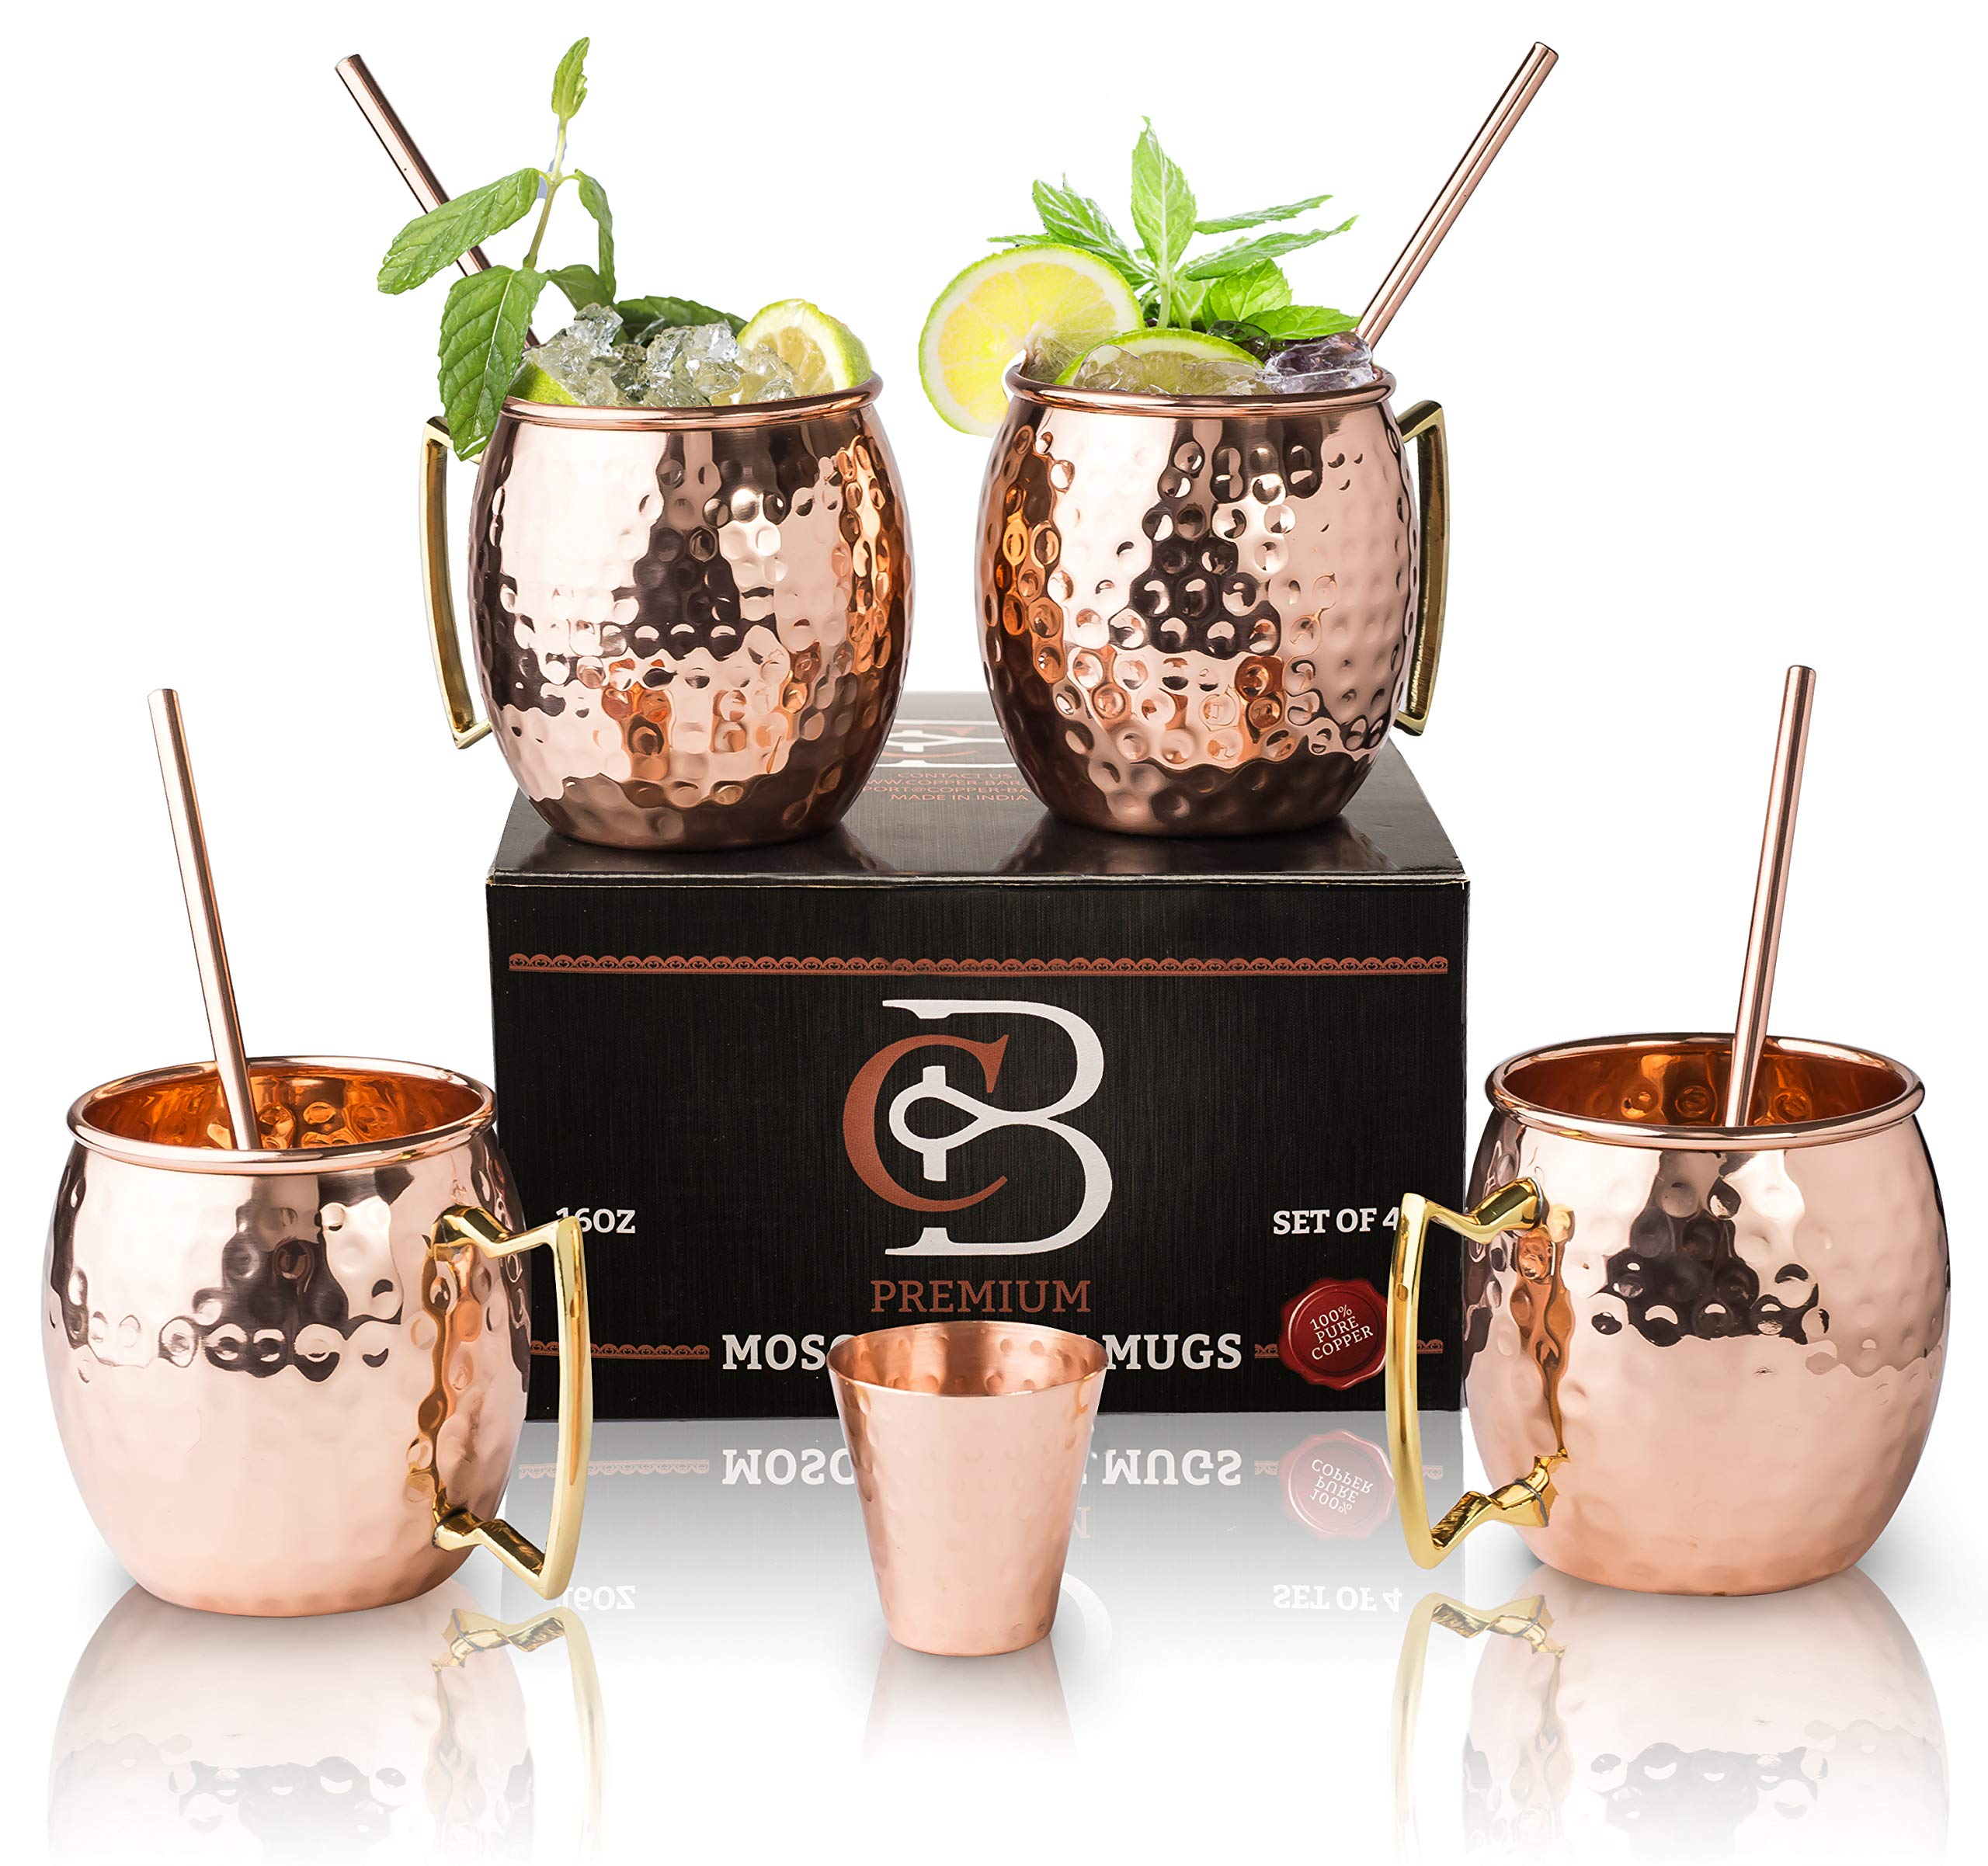 Moscow Mule Mugs 100% Solid Copper, Hammered, Gift Set of 4, No Nickel - Food Safe, 16oz, BONUS: 4 Straws + 1 Shot Glass & 2 E-Books by Copper-Bar by Copper-Bar